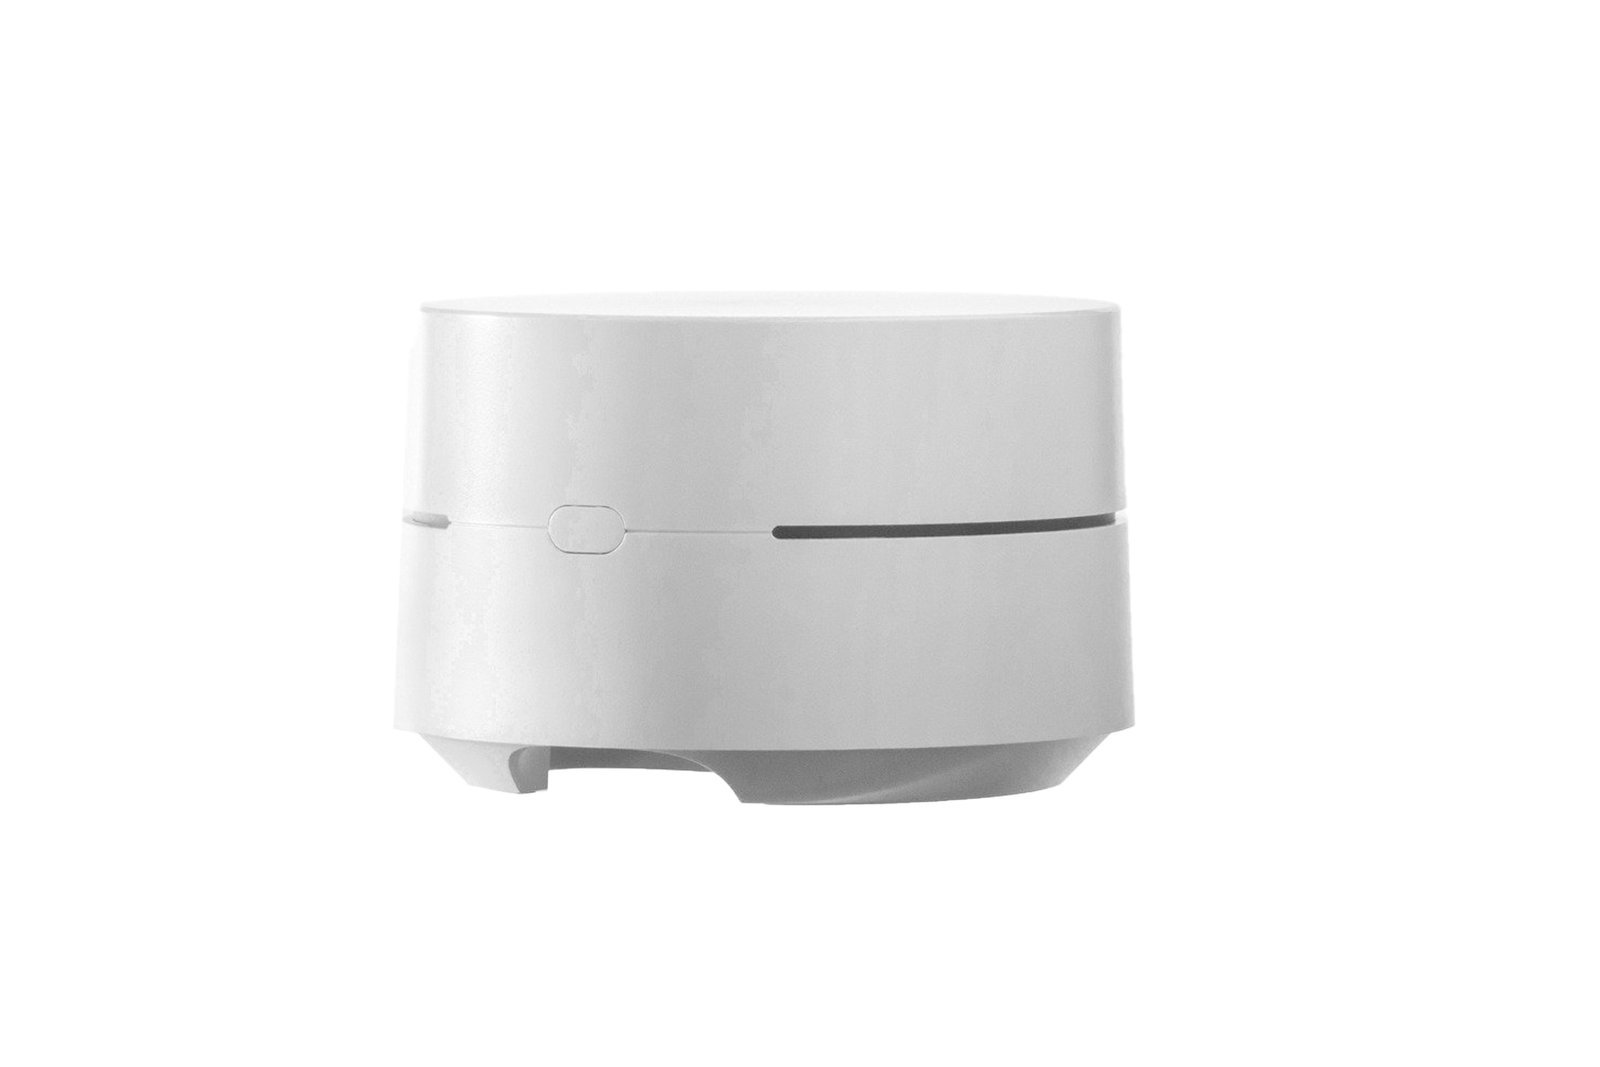 Google Wifi 1-Pack Home Wi-Fi System NLS-1304-25 AC-1304